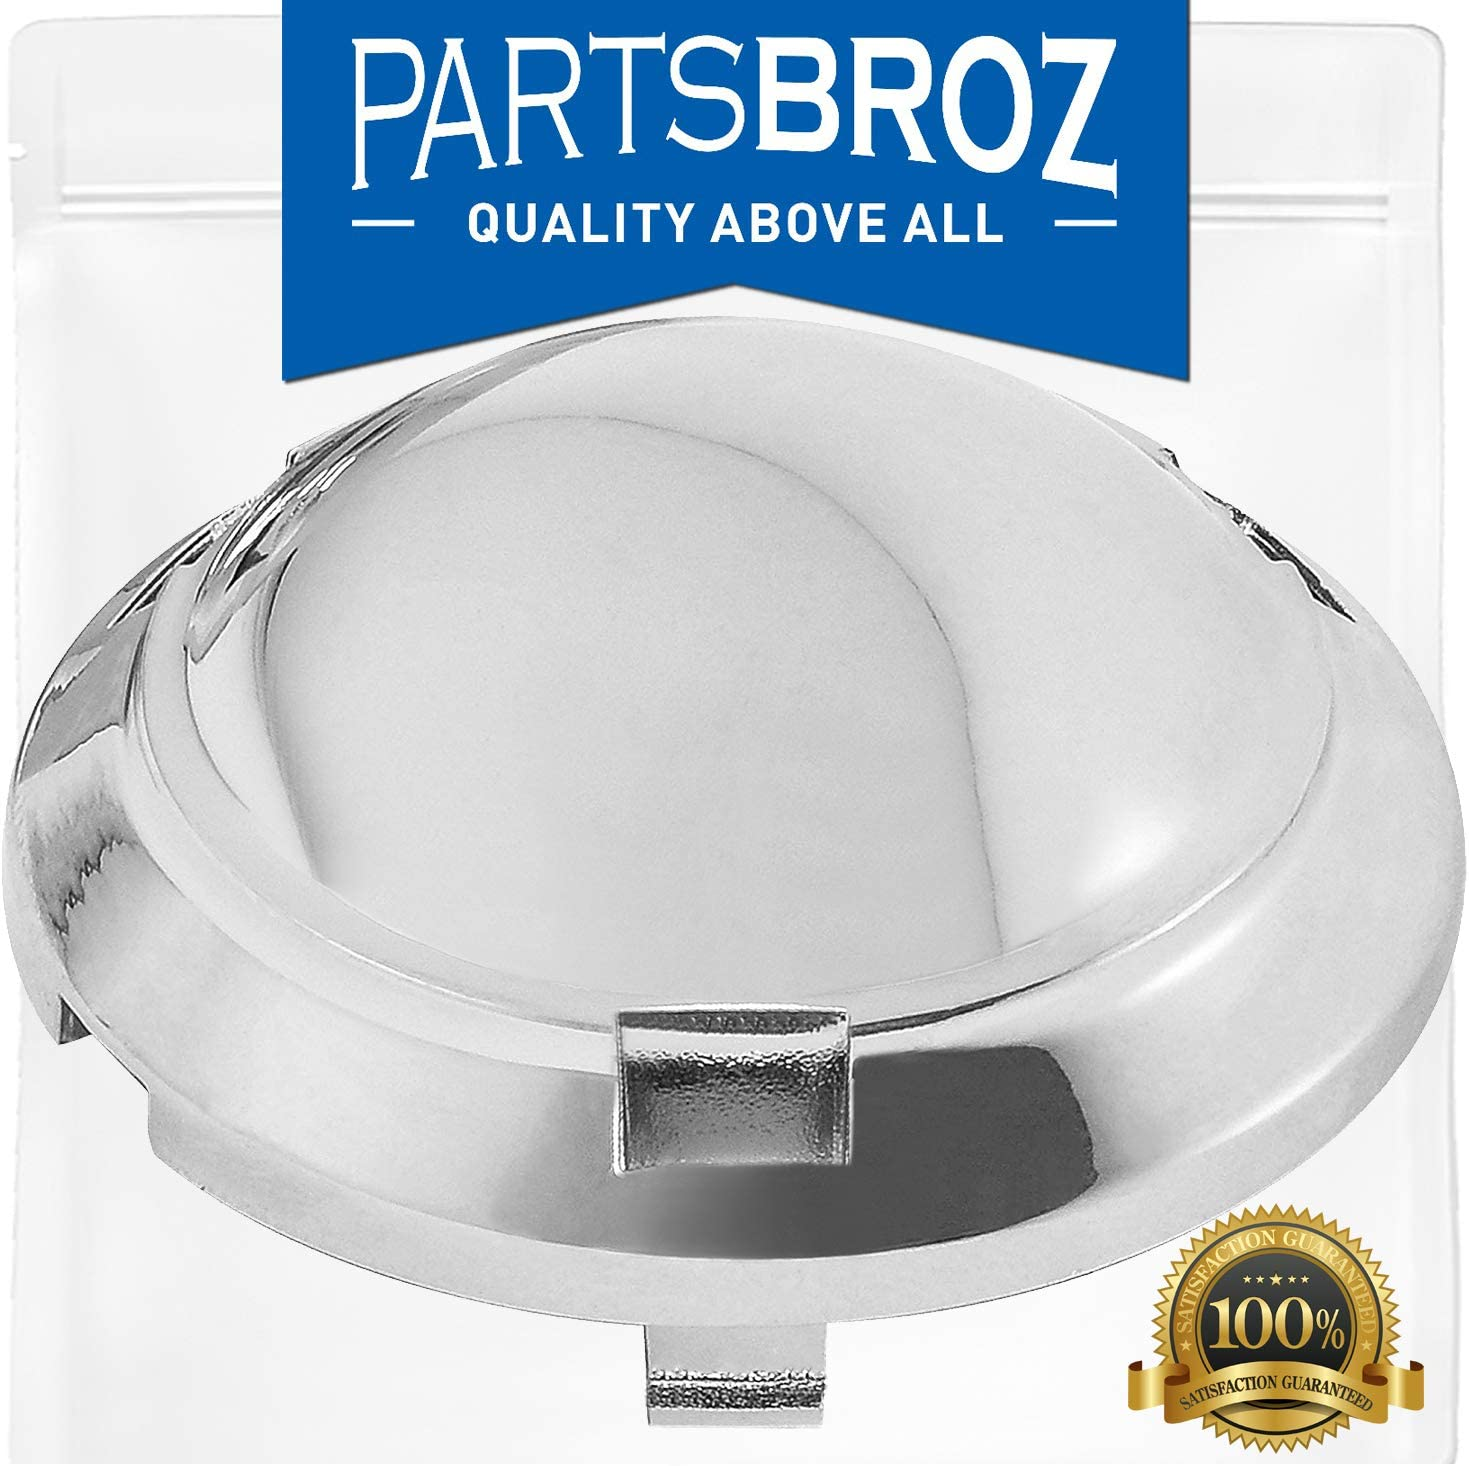 DC66-00777A Pulsator Cap for Samsung Washing Machines by PartsBroz - Replaces Part Numbers AP5788799, 3282678 & PS8753312